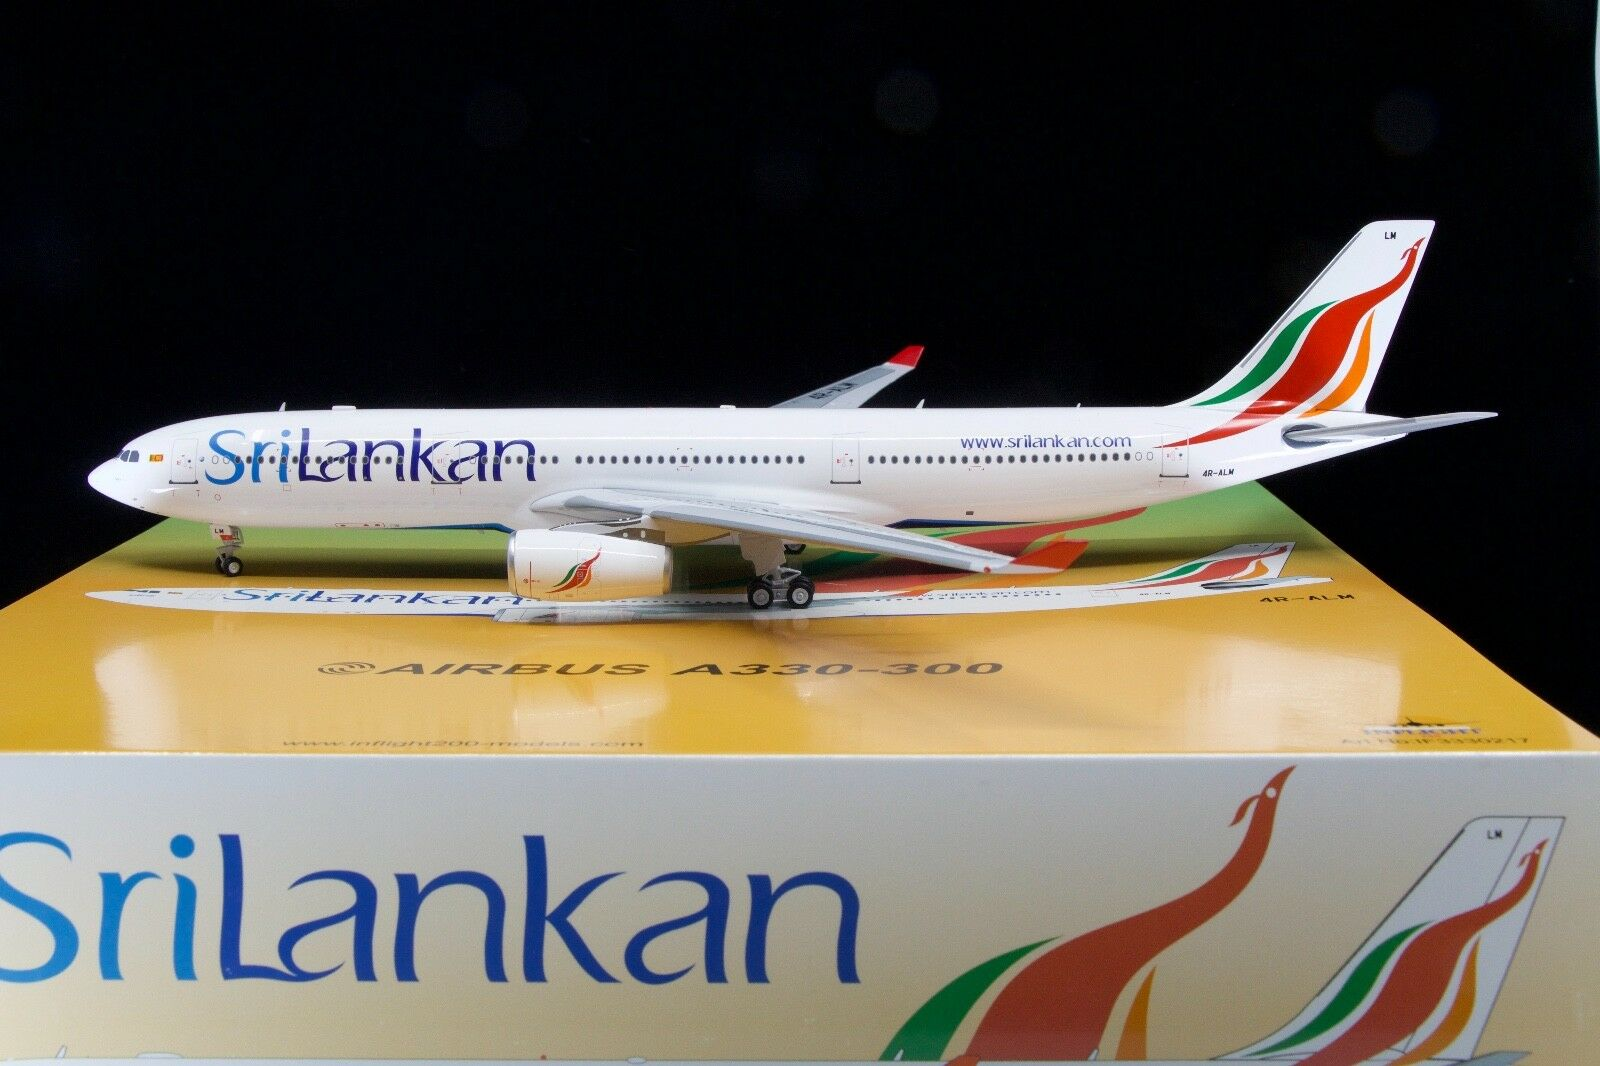 Inflight200 1 200 SriLankan Airlines A330-300 4R-ALM